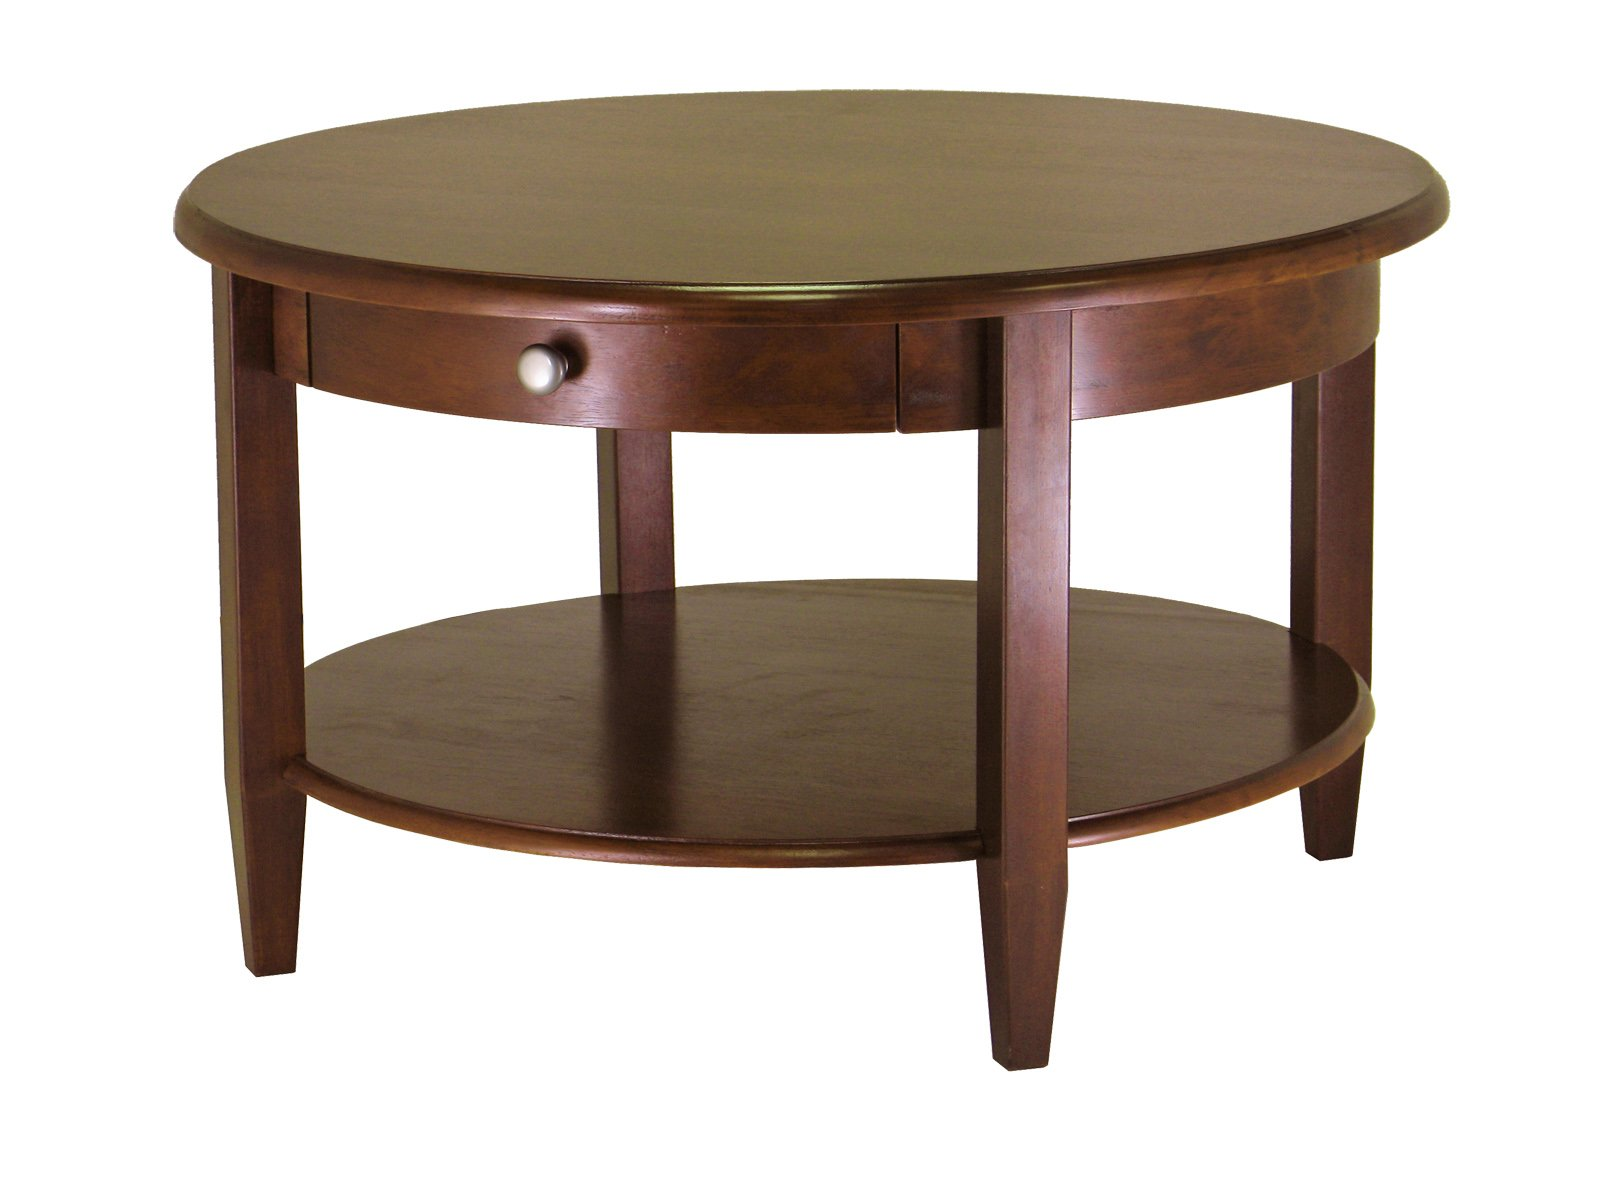 Winsome 94231 Concord Round Coffee Table - Antique Walnut